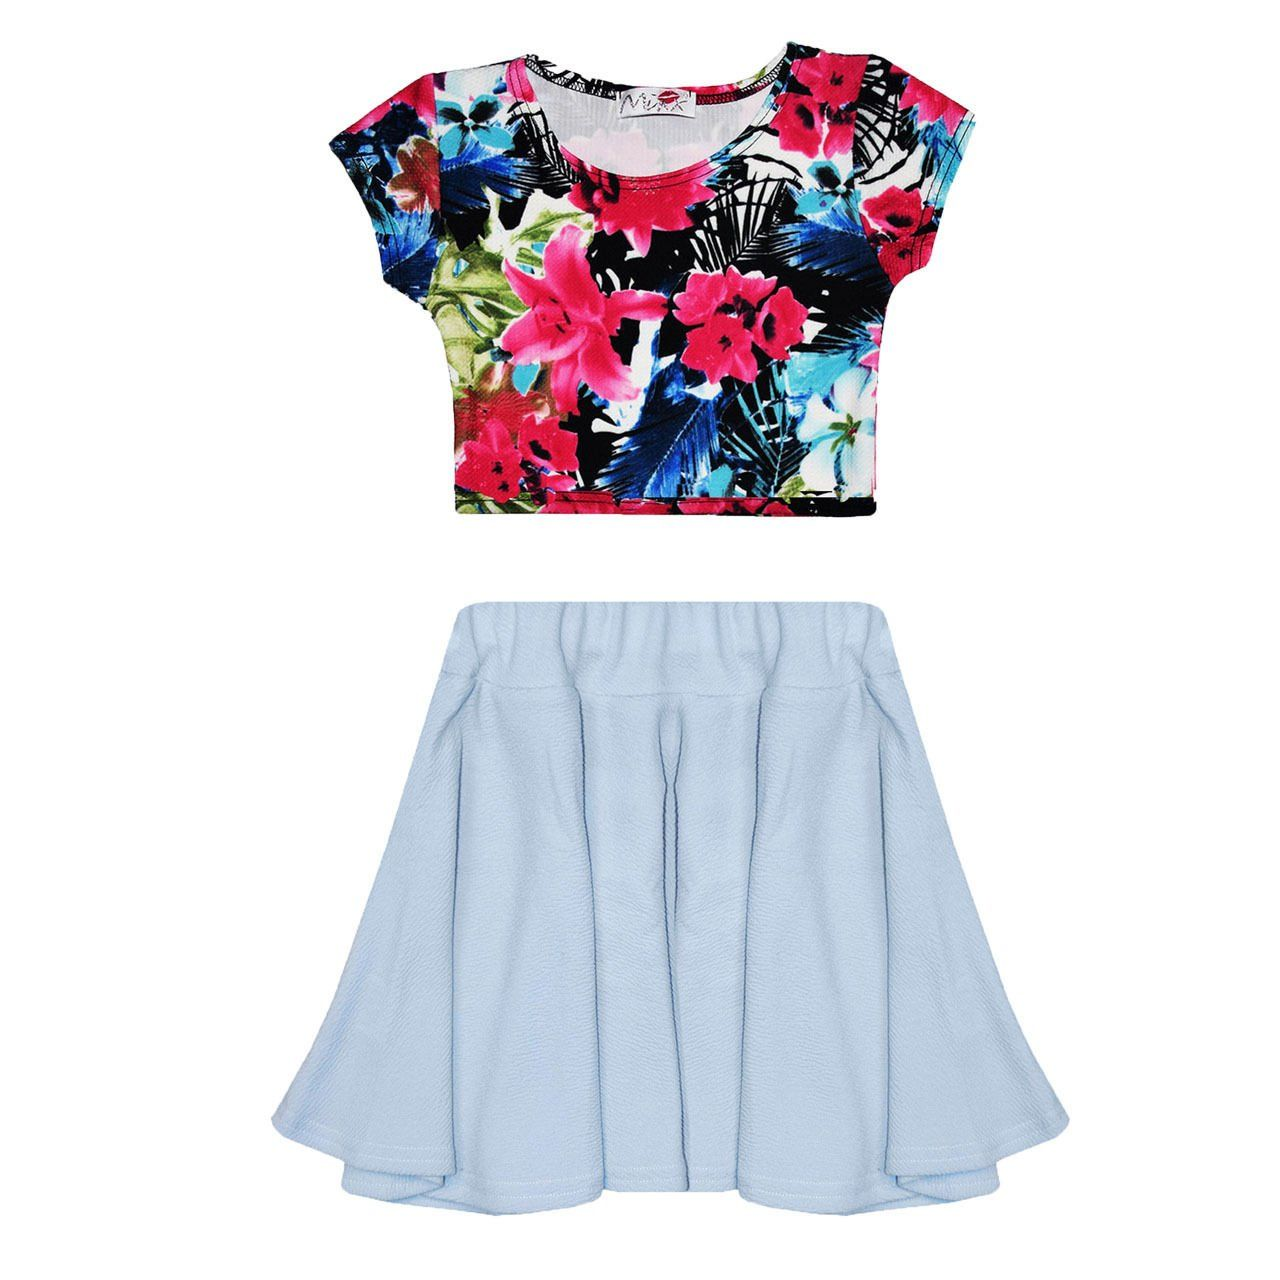 c05955f0bd4 Girls Kids Plain Skater Skirt Waffle Effect Printed Crop Top Age 7-13 Years  (